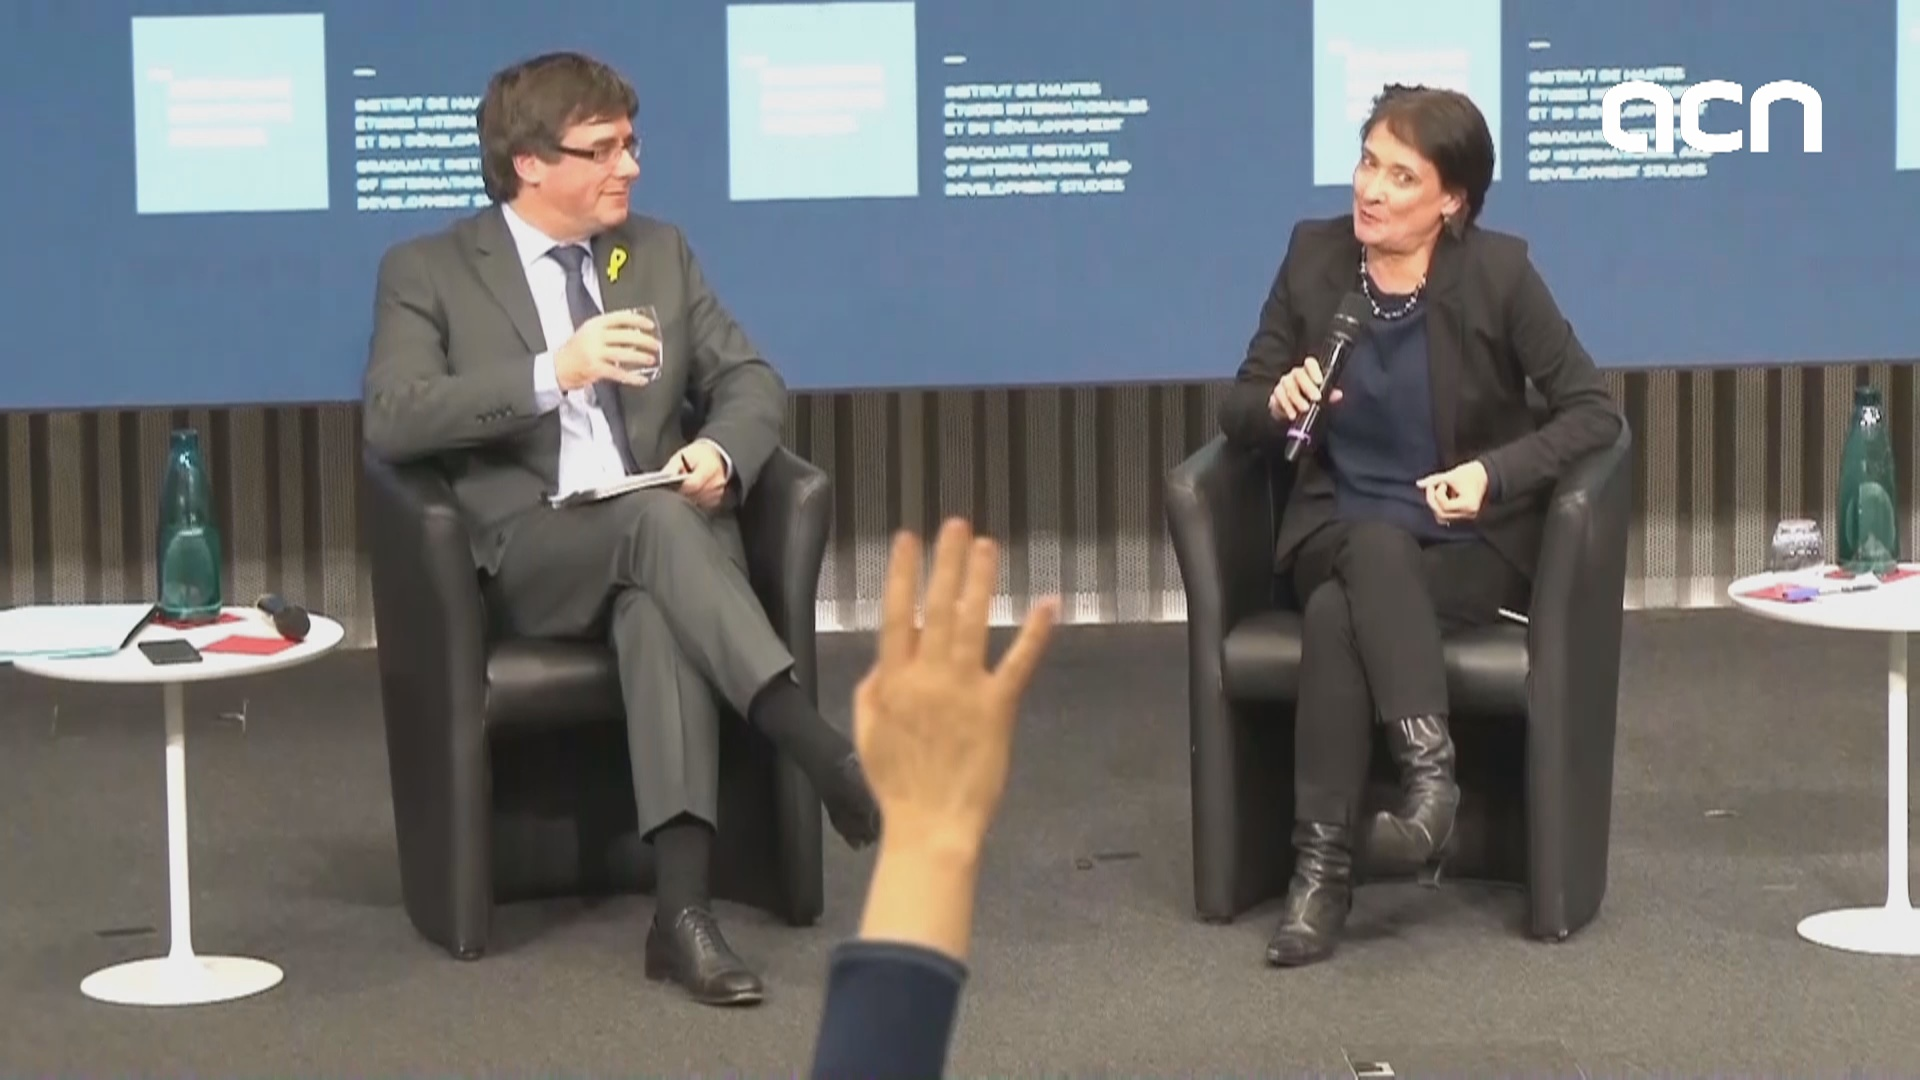 Puigdemont takes part in an event in Geneva